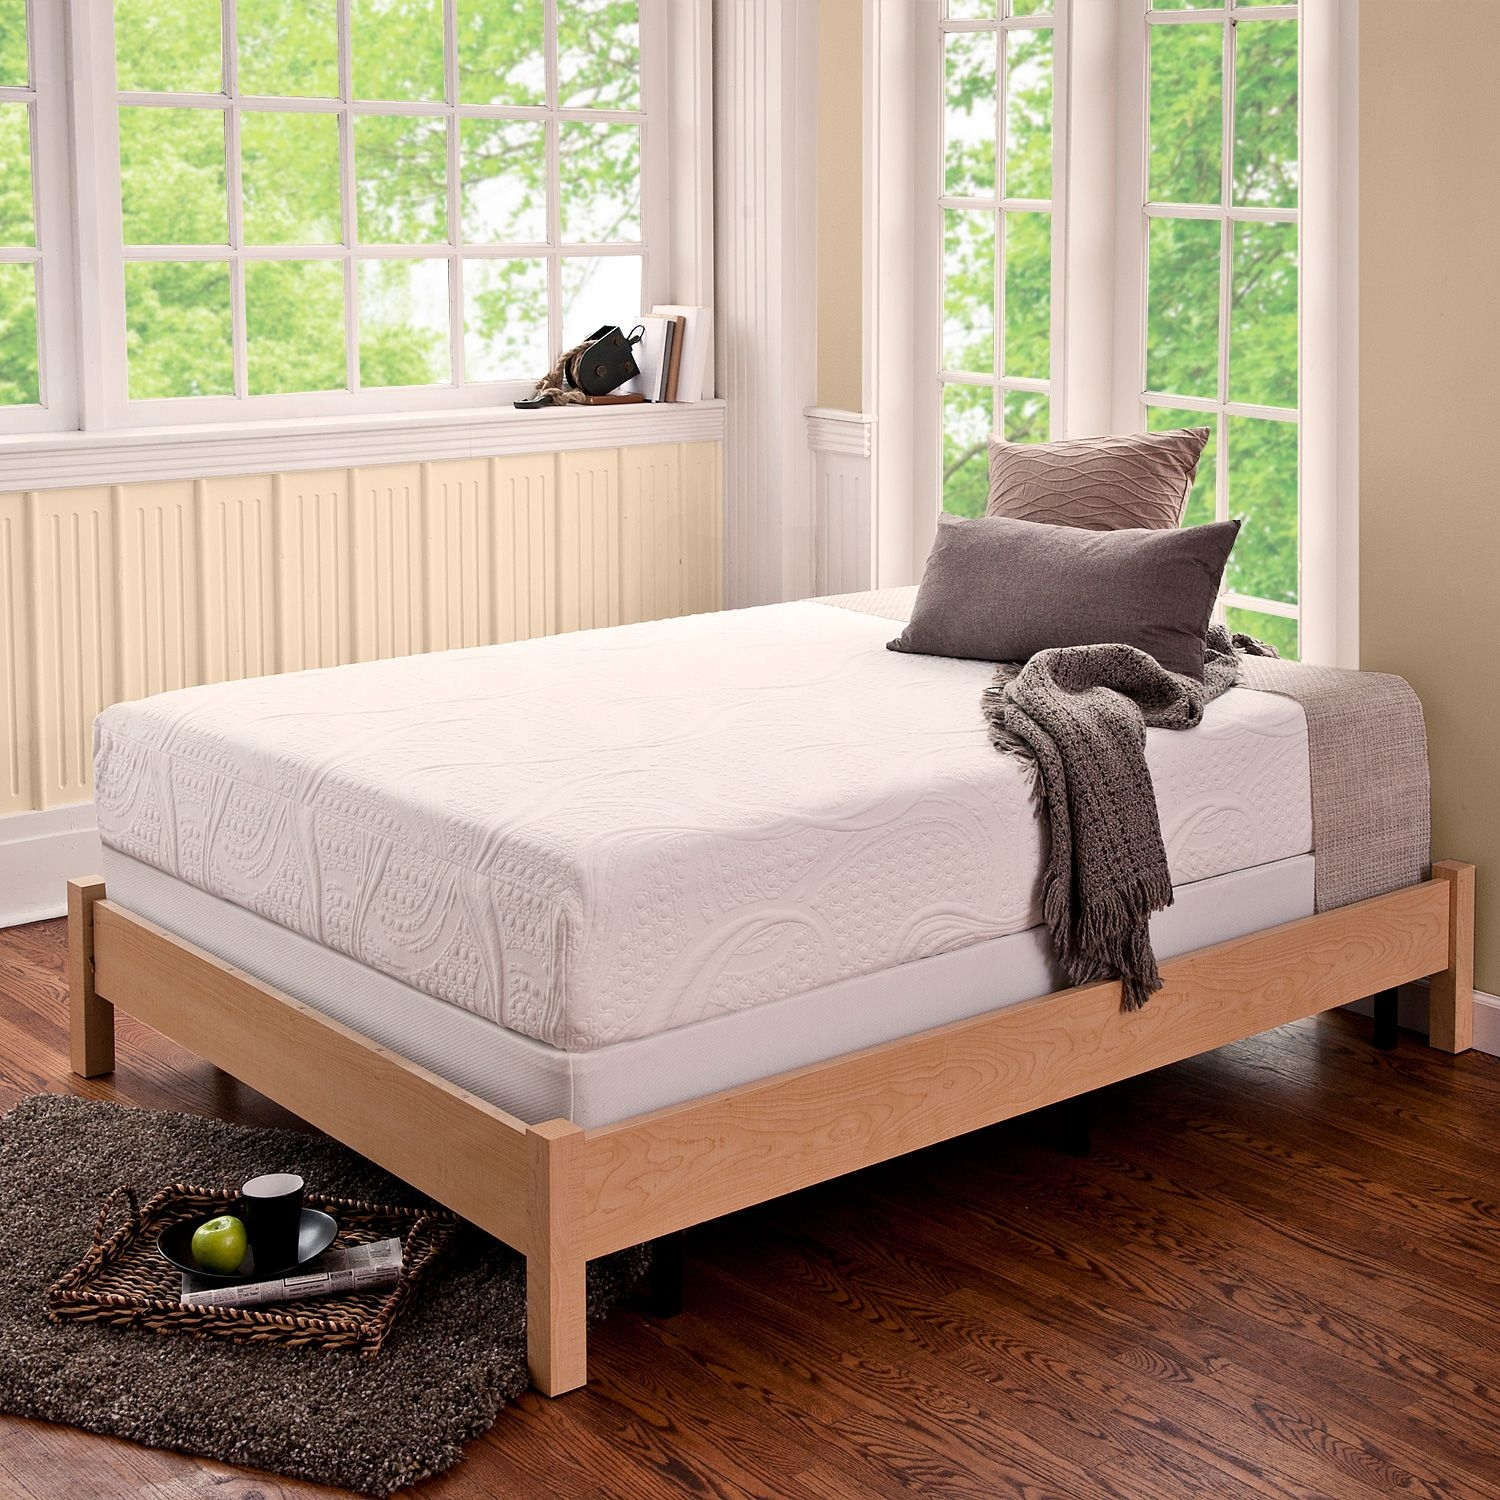 Permalink to Bed Frames For Boxspring And Mattress